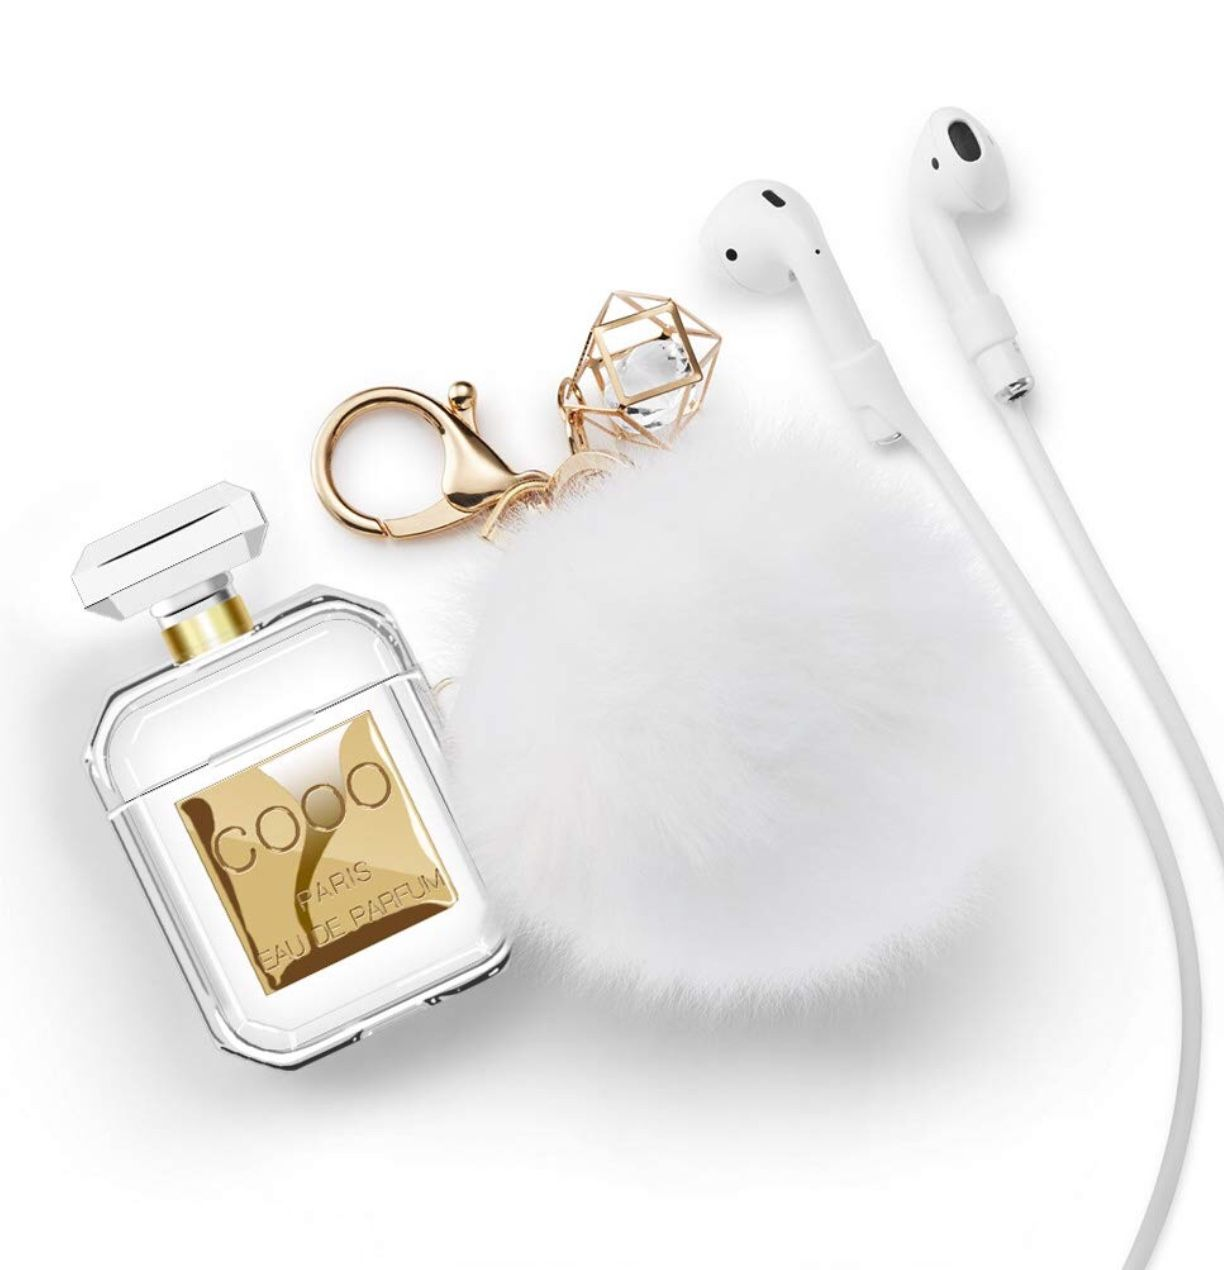 Lastma airpods case perfume bottle case silicone soft